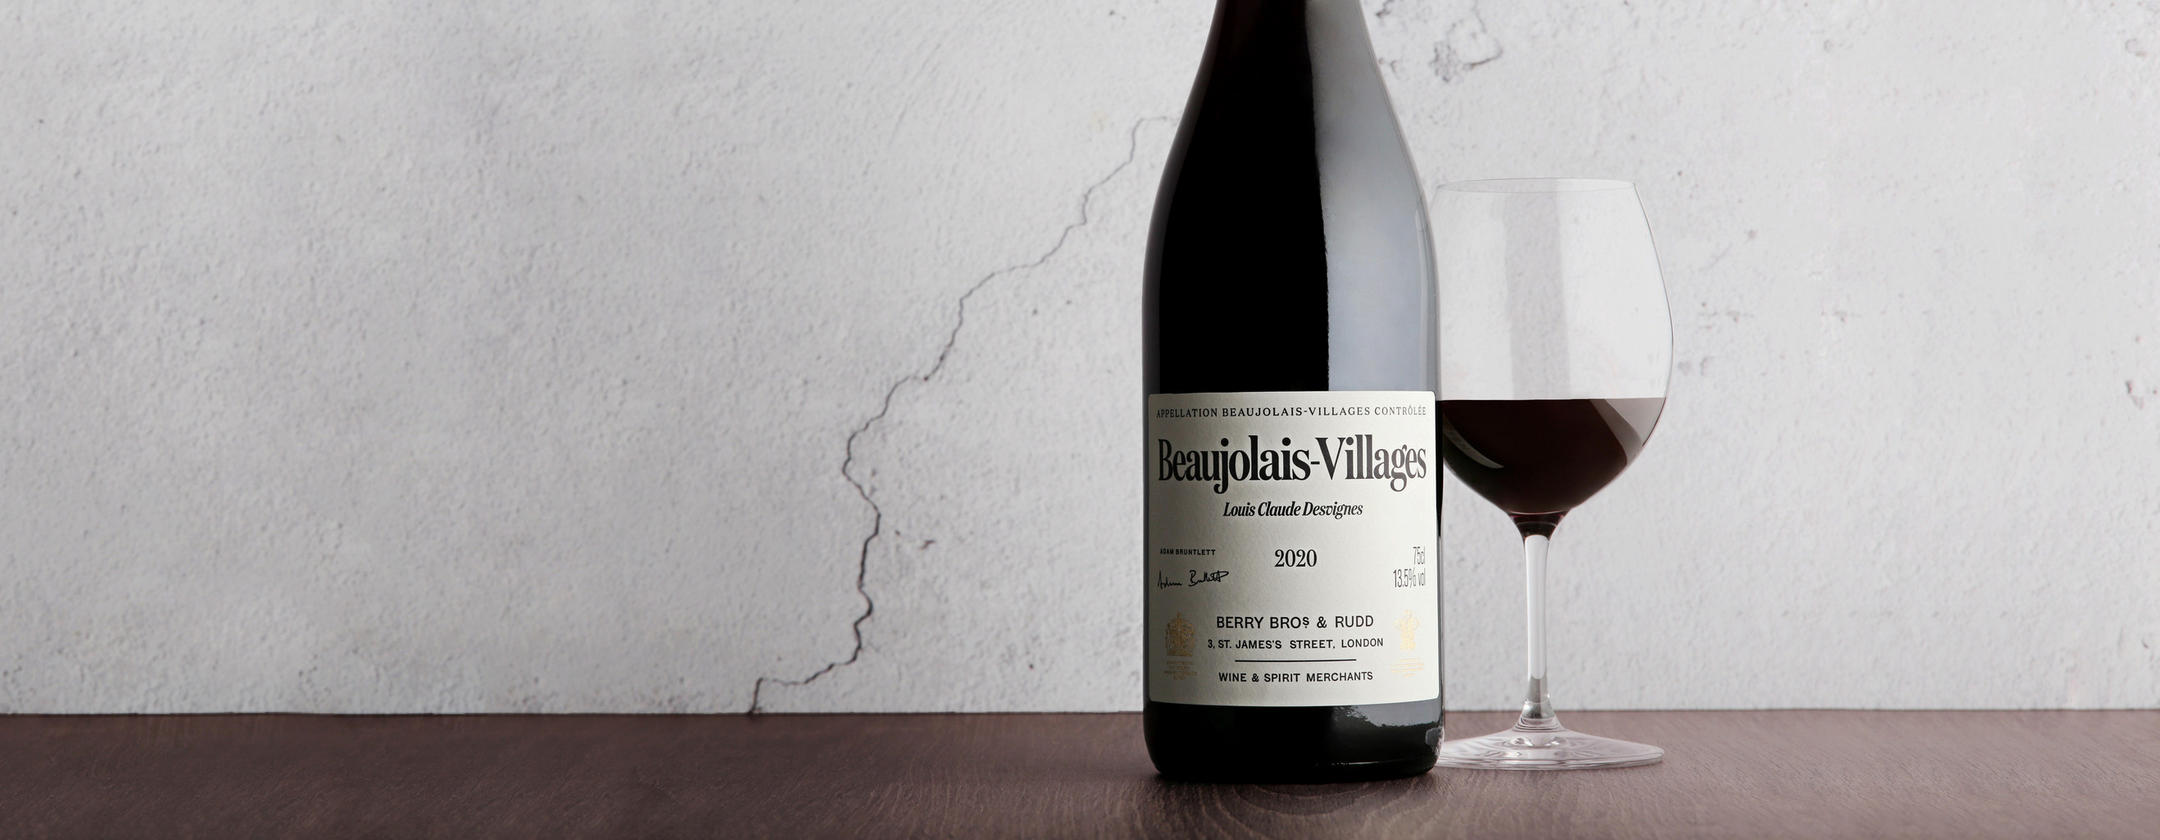 Just arrived _ The latest vintage of our Beaujolais-Villages